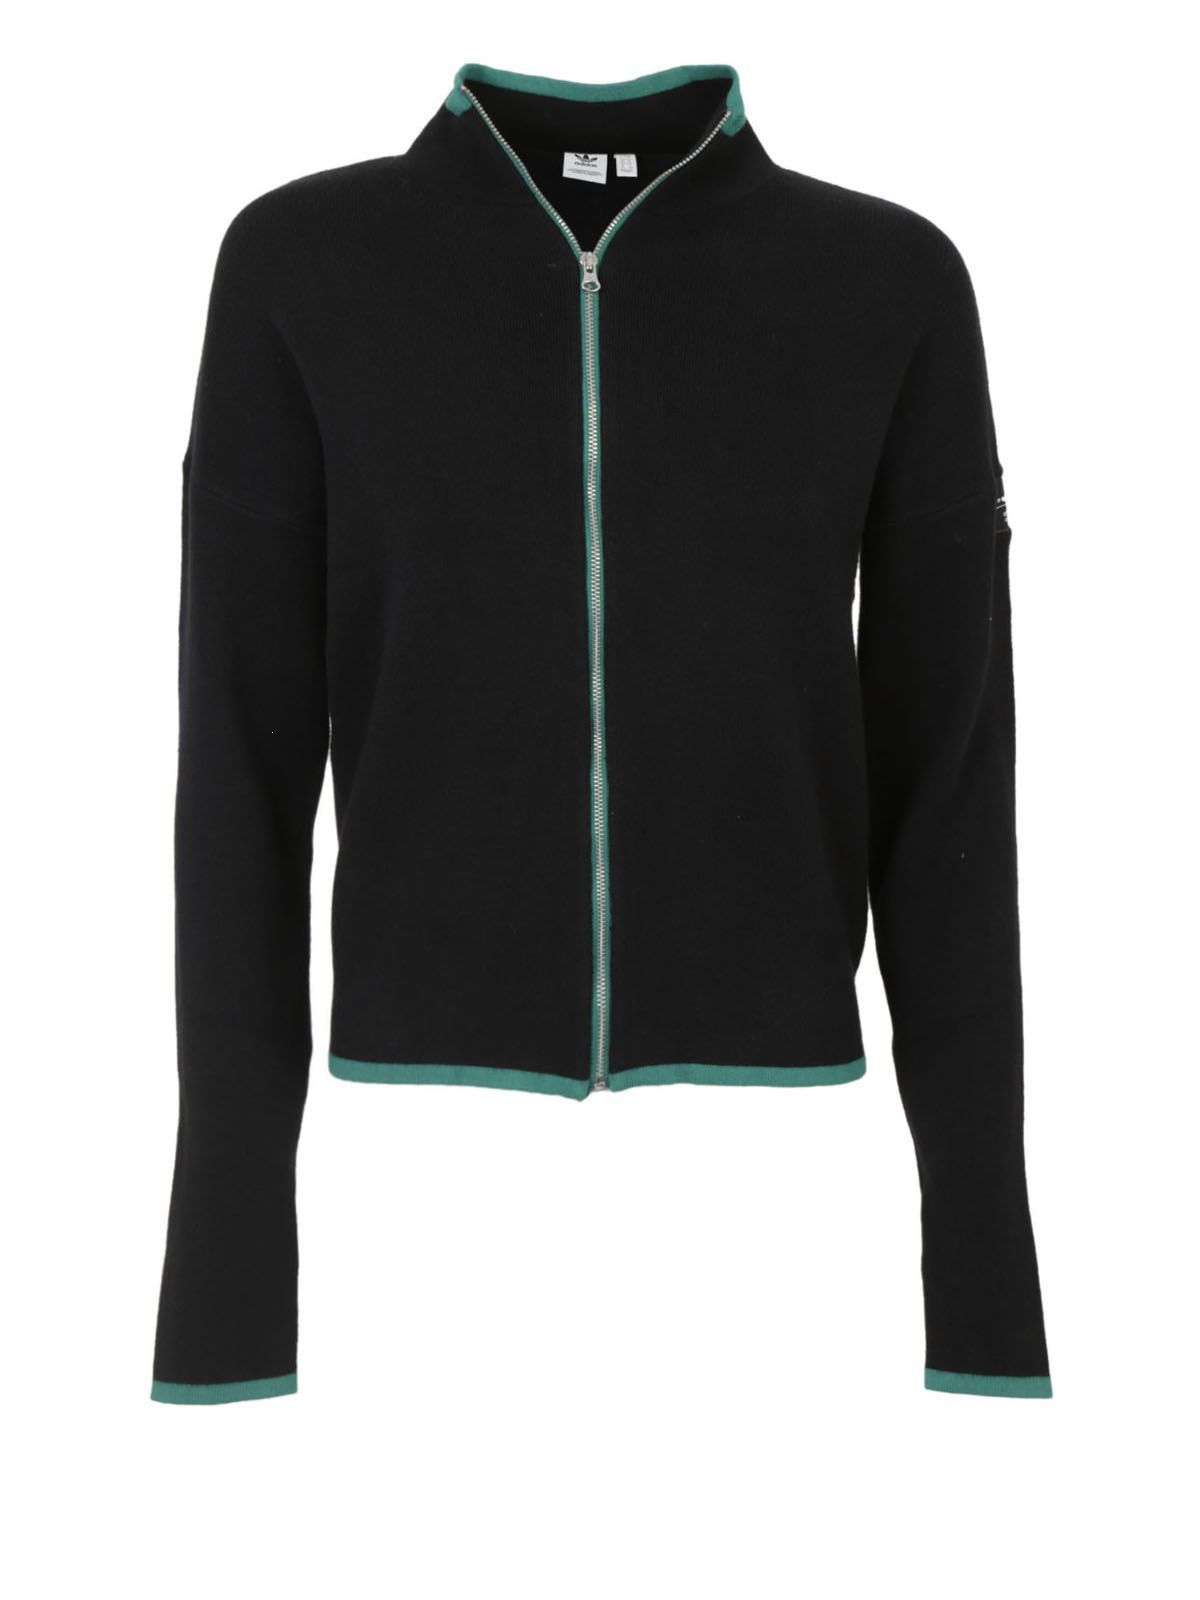 Adidas Originals - Adidas Originals Zip-up Cardigan, Women's ...